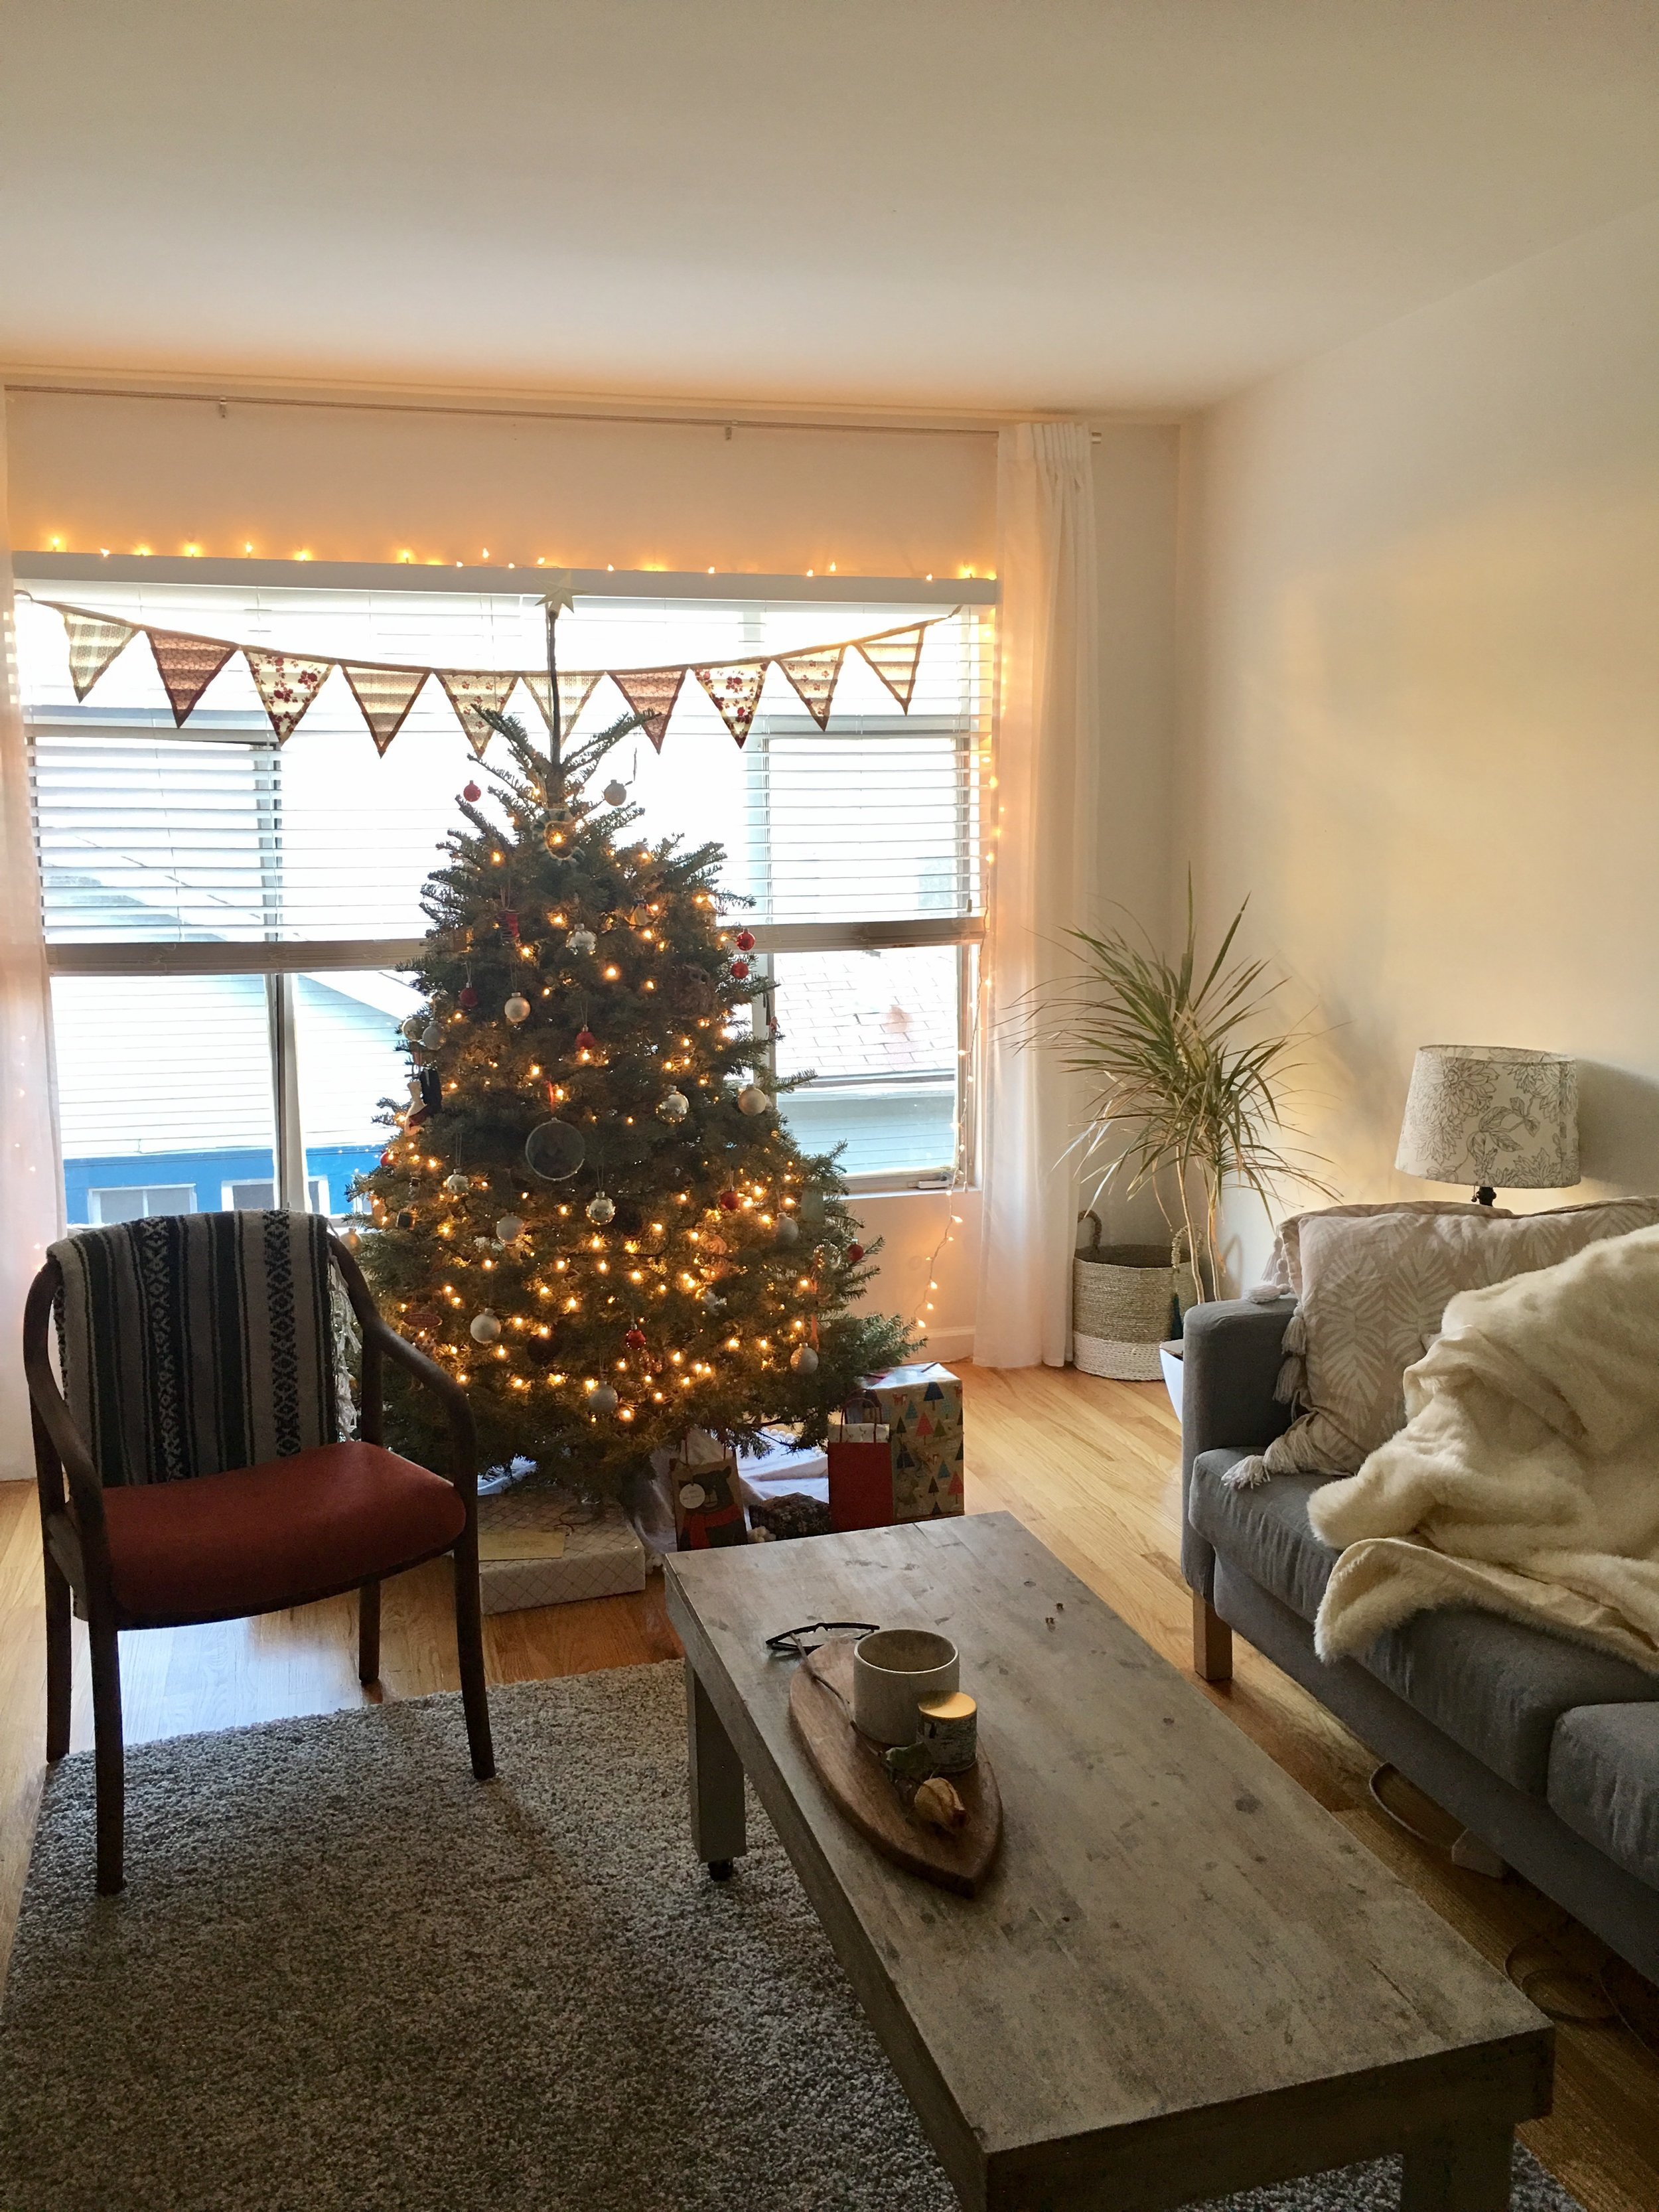 Our home on Christmas morning. (Do not buy this couch.)